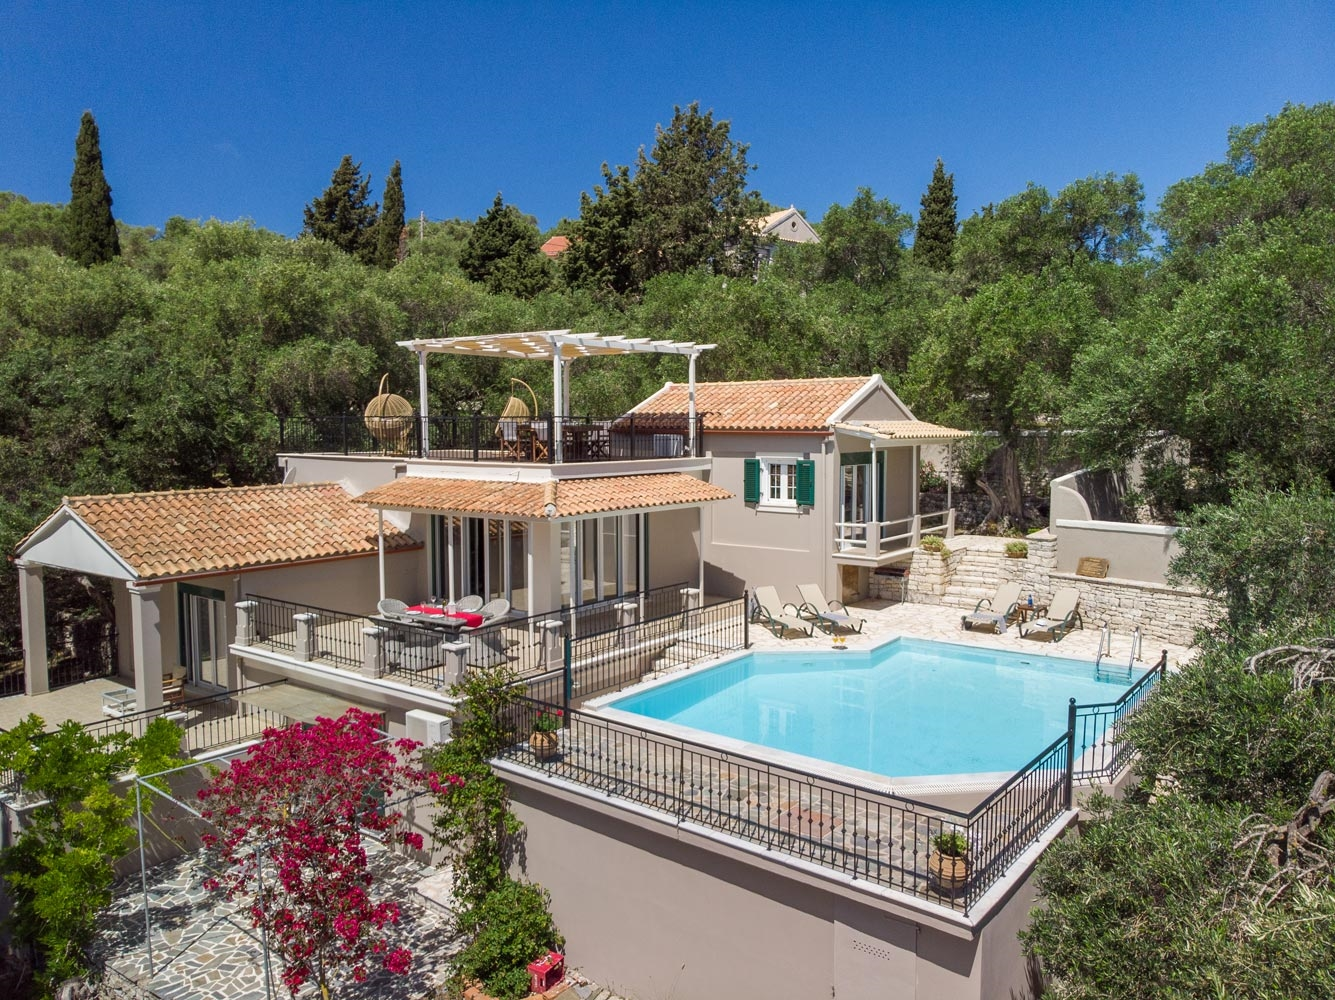 Angouleta Villa - Enjoy sunsets in an unobstructed scenery.